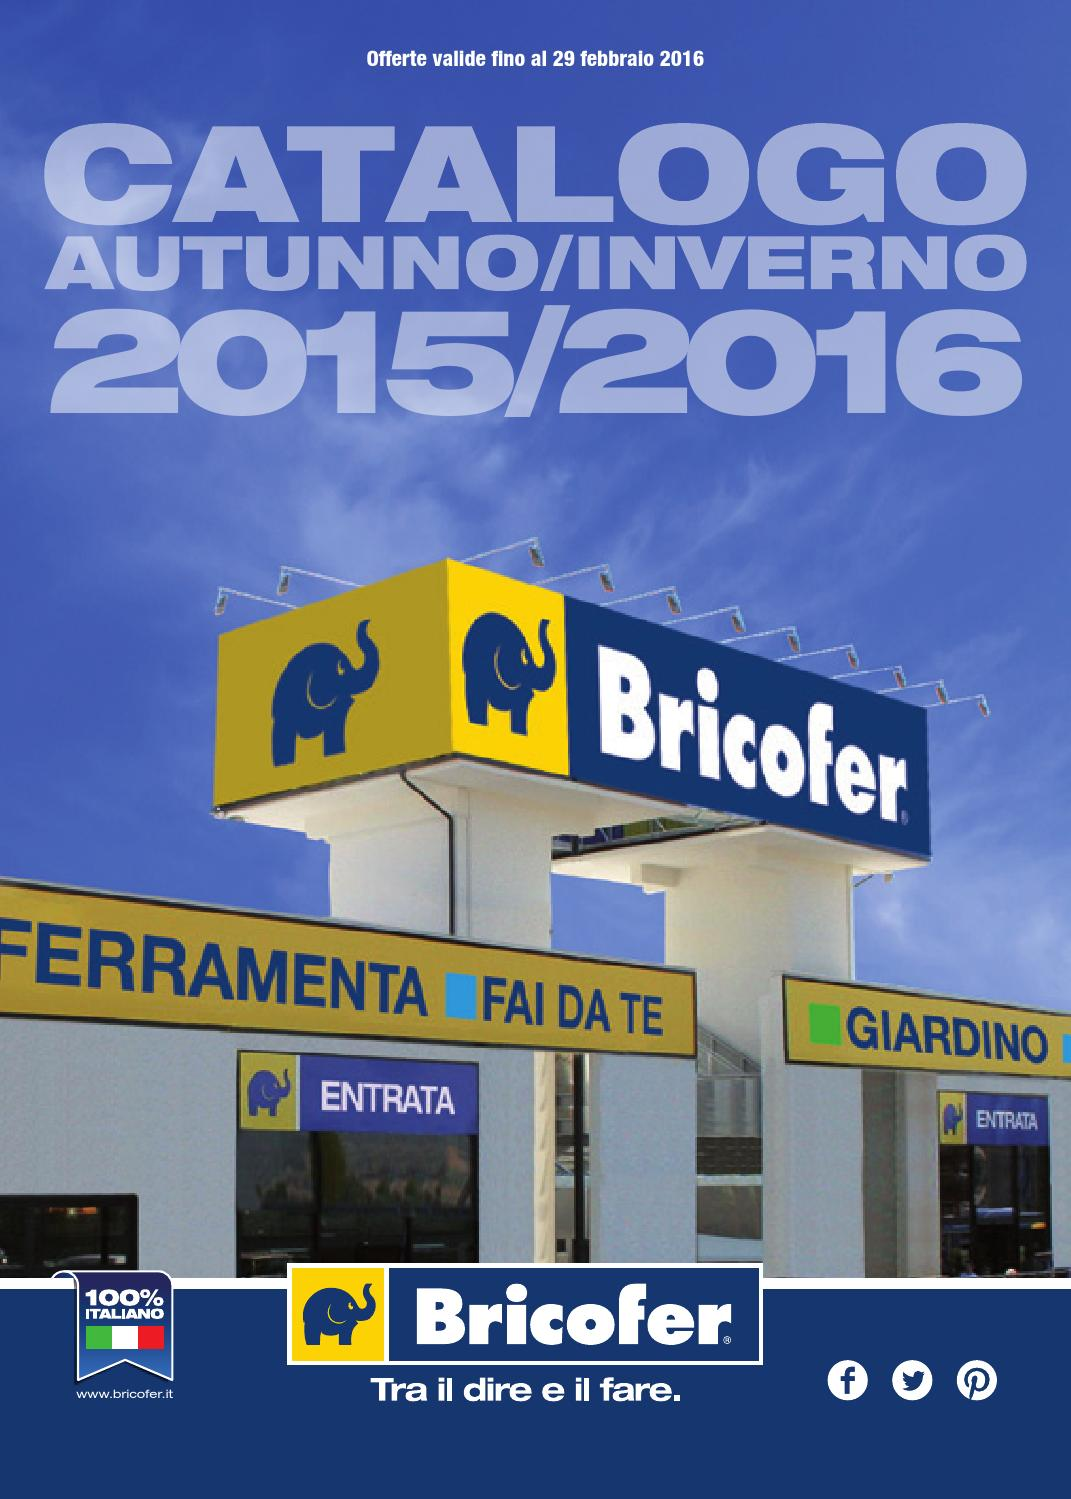 catalogo autunno inverno 2015 2016 by bricofer italia spa